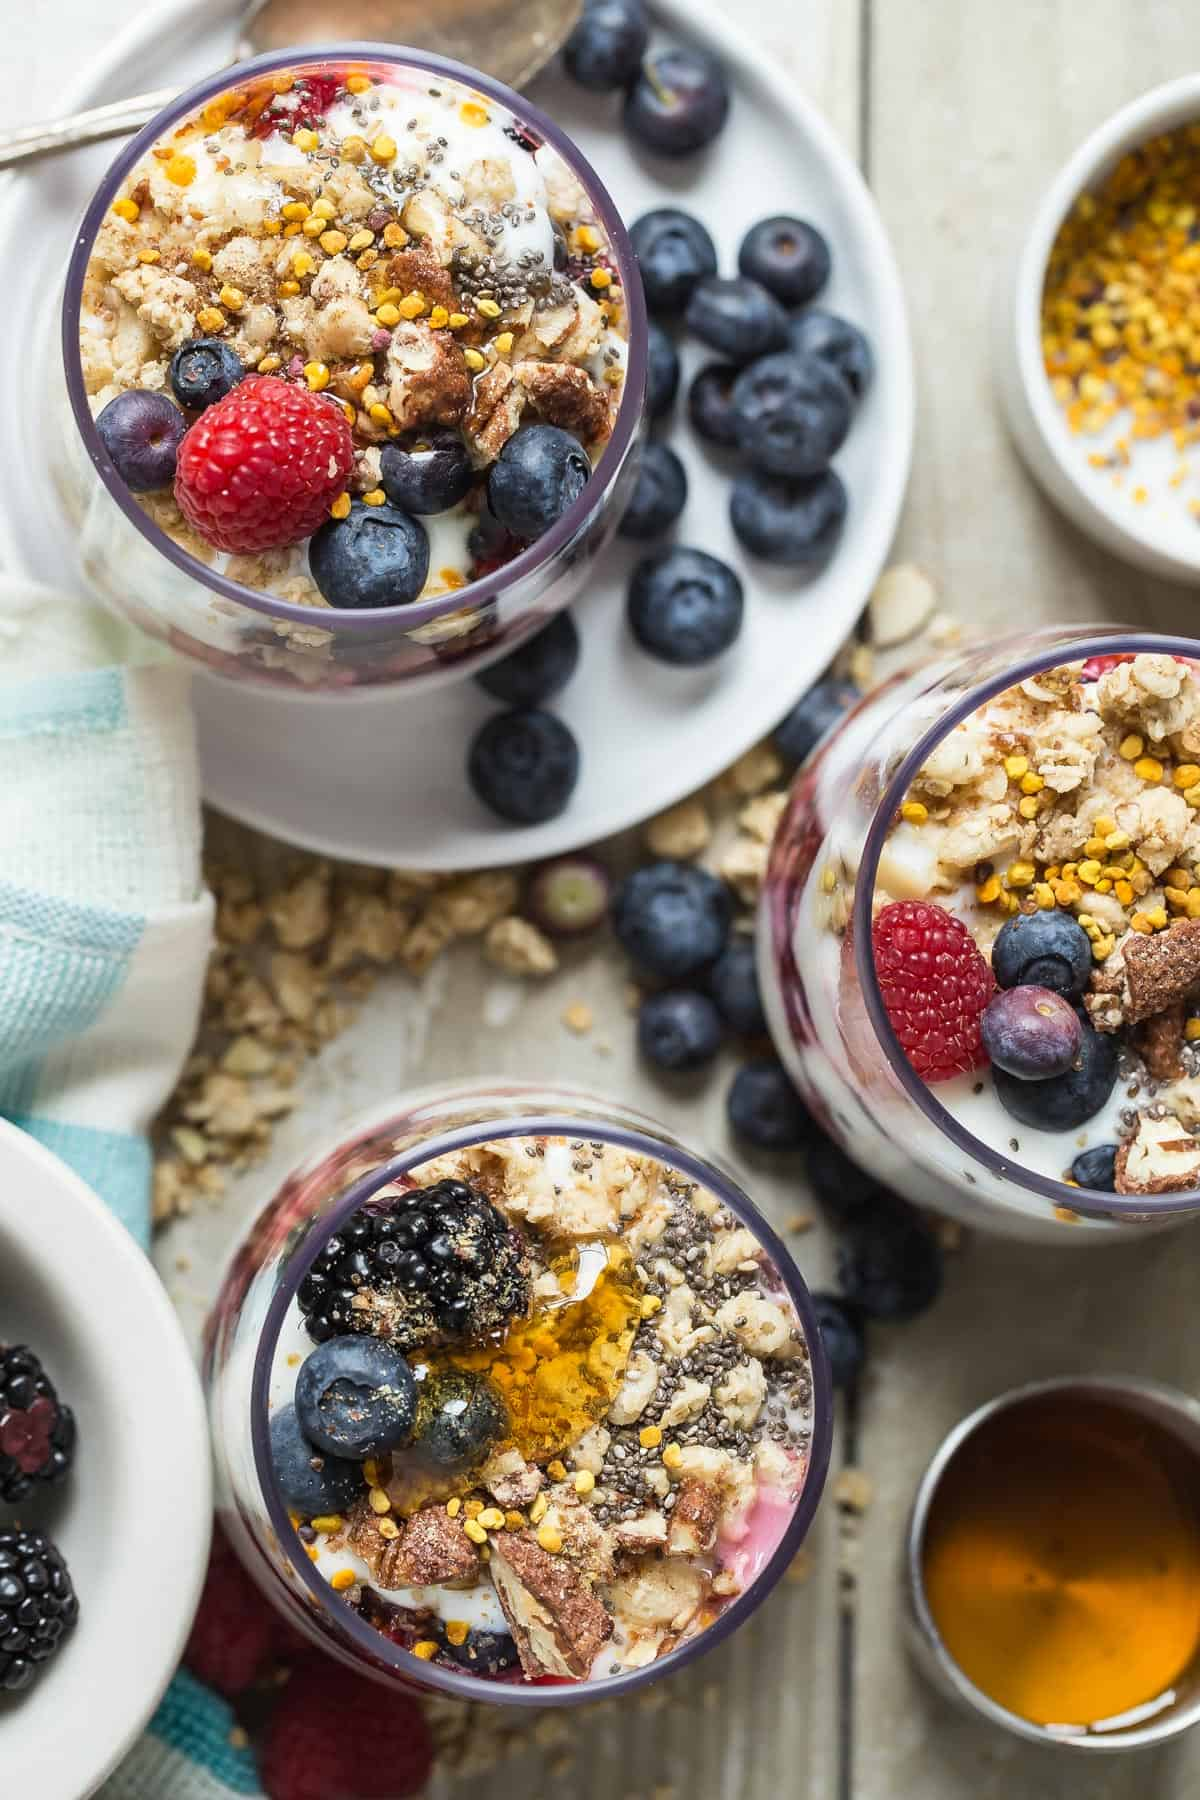 This might be the perfect and easiest way to start your day! Triple Berry Parfaits full of blueberries, raspberries and blackberries plus granola and healthy toppings.